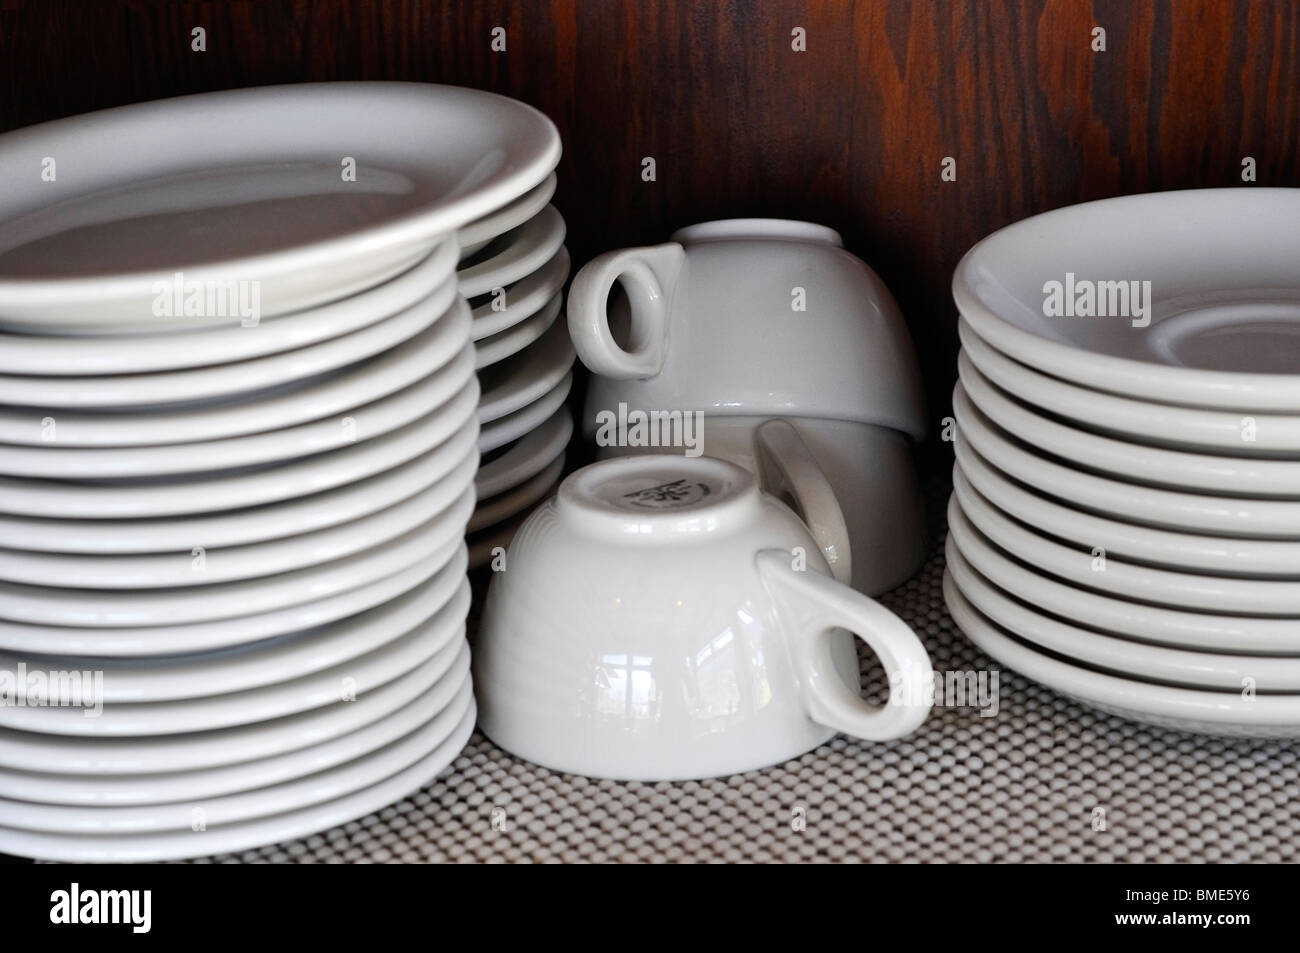 Empty Plates, Saucers and Cups - Stock Image